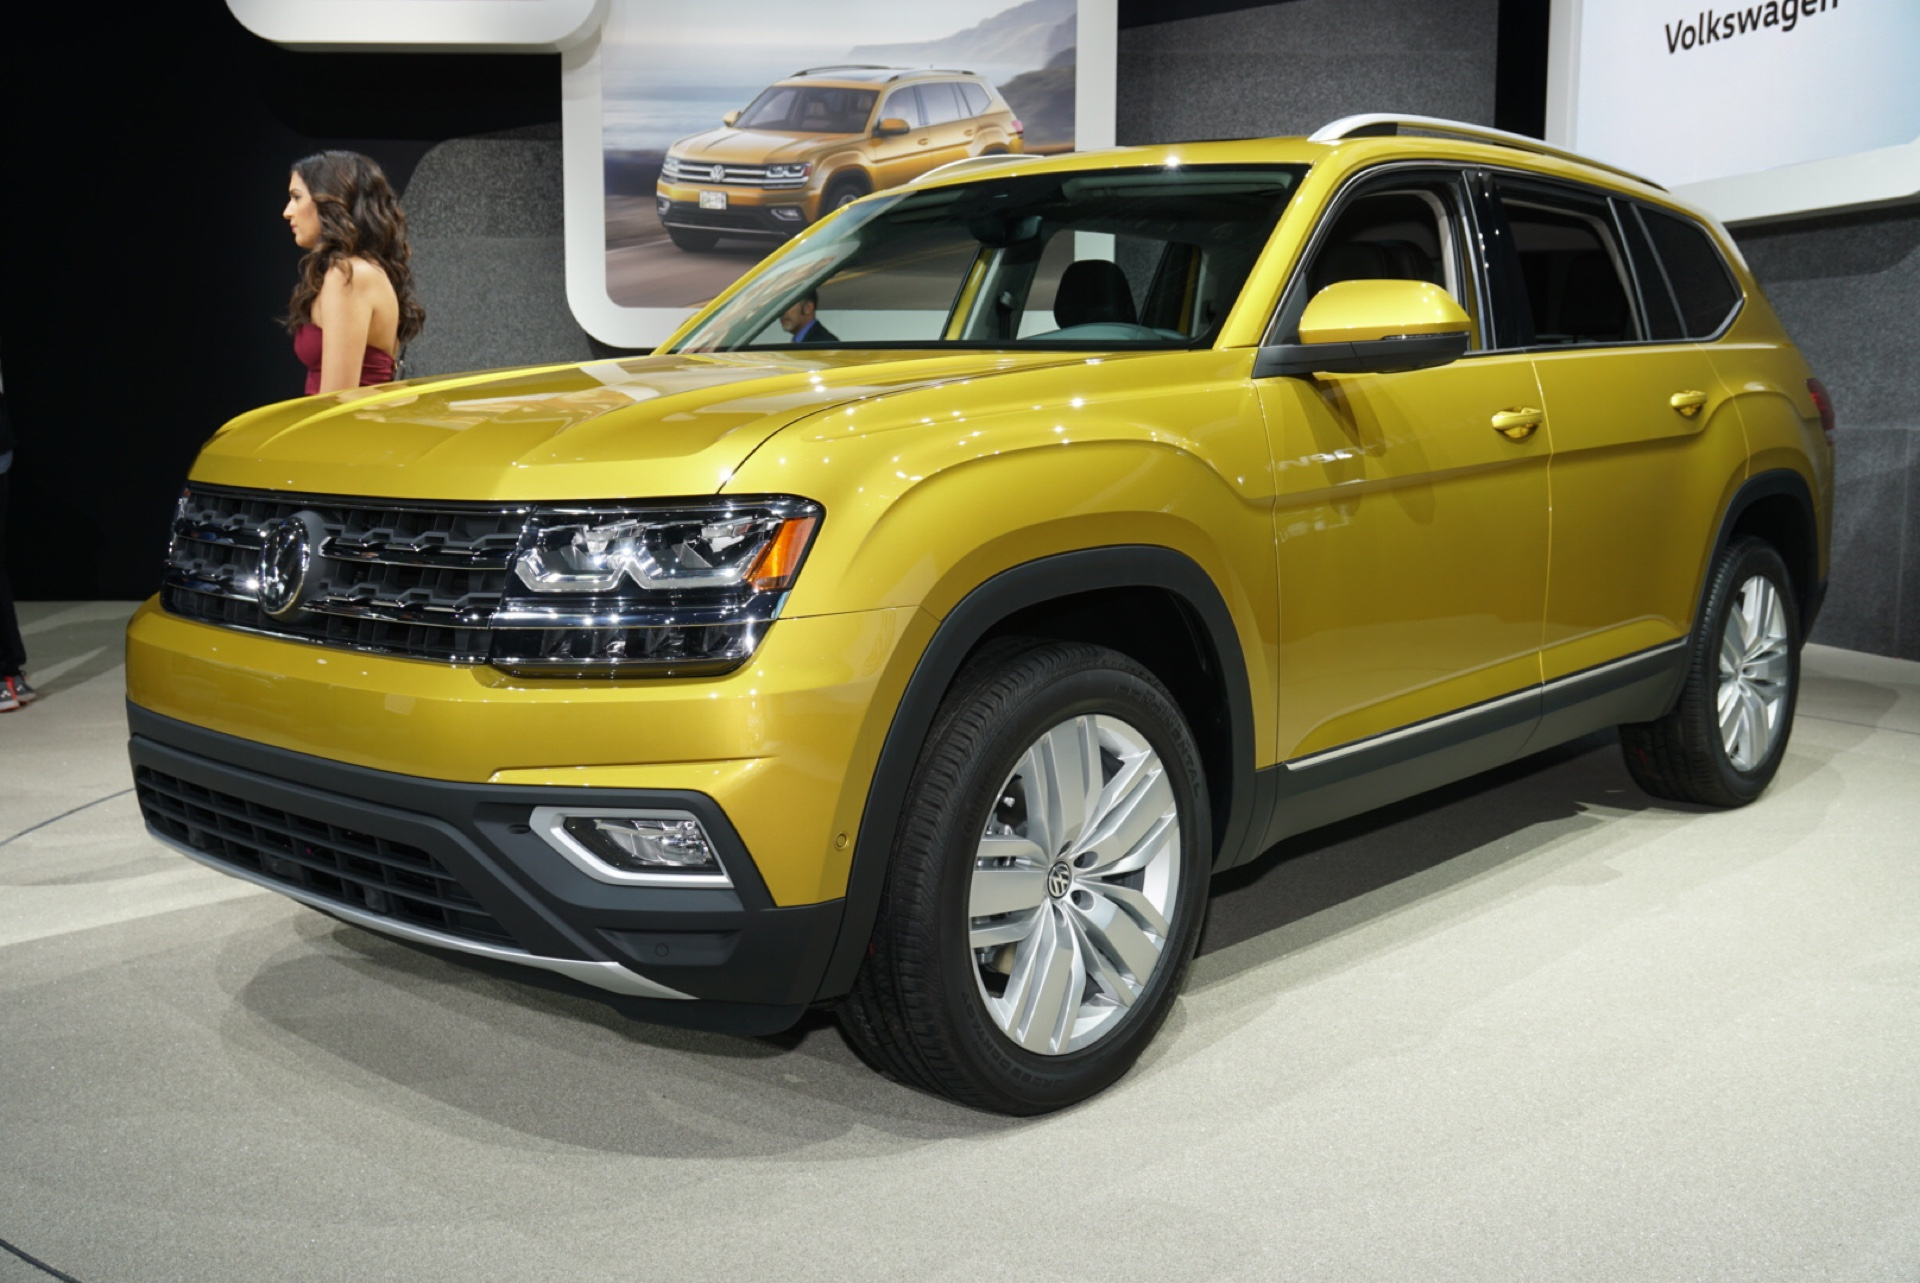 2018 volkswagen atlas 3 row suv made in us. Black Bedroom Furniture Sets. Home Design Ideas